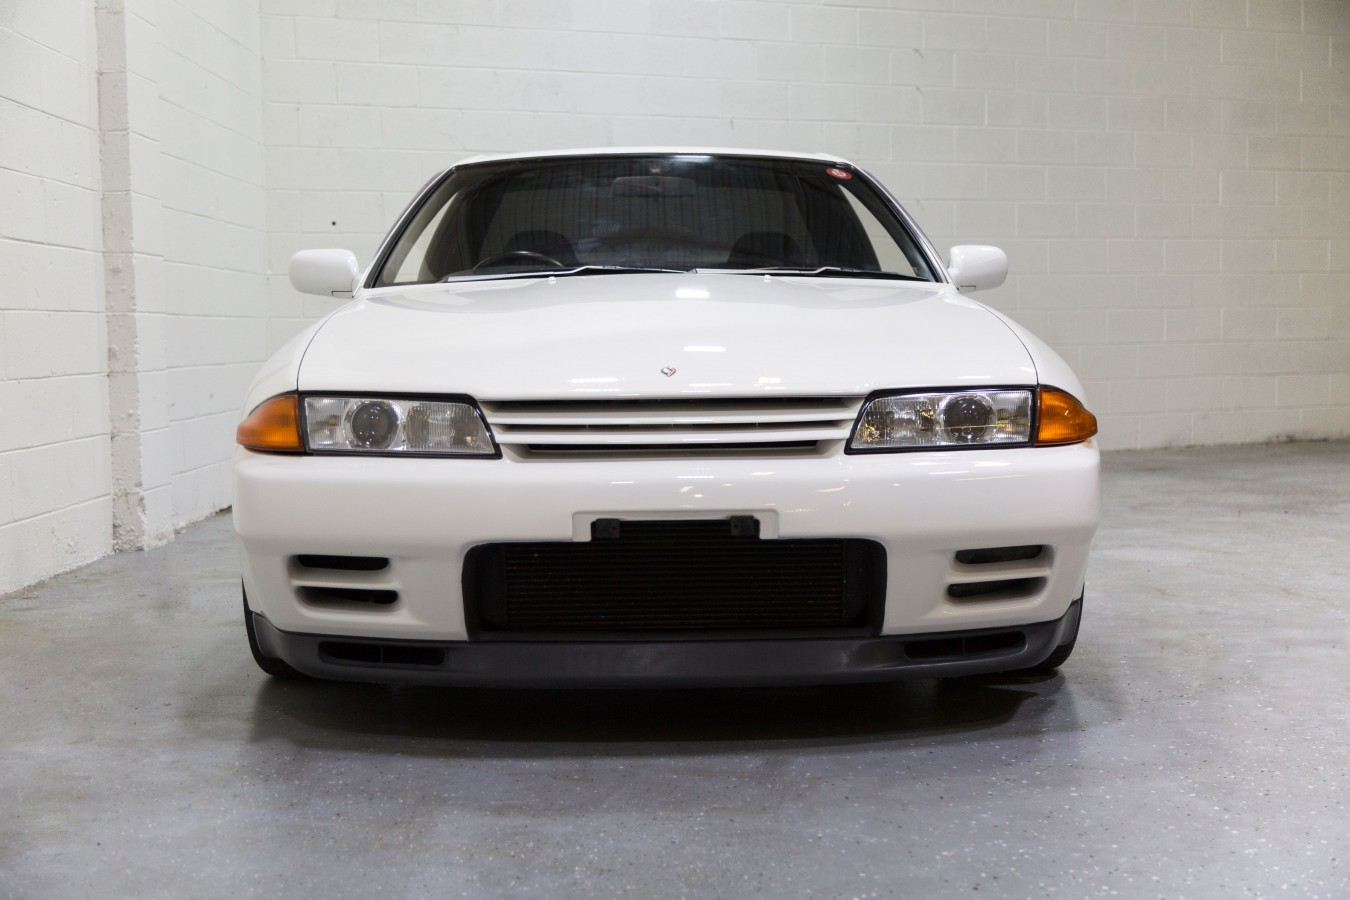 Skyline For Sale Usa >> 100 Legally Imported Jdm 1992 Nissan Skyline Gtr R32 With Rb26det